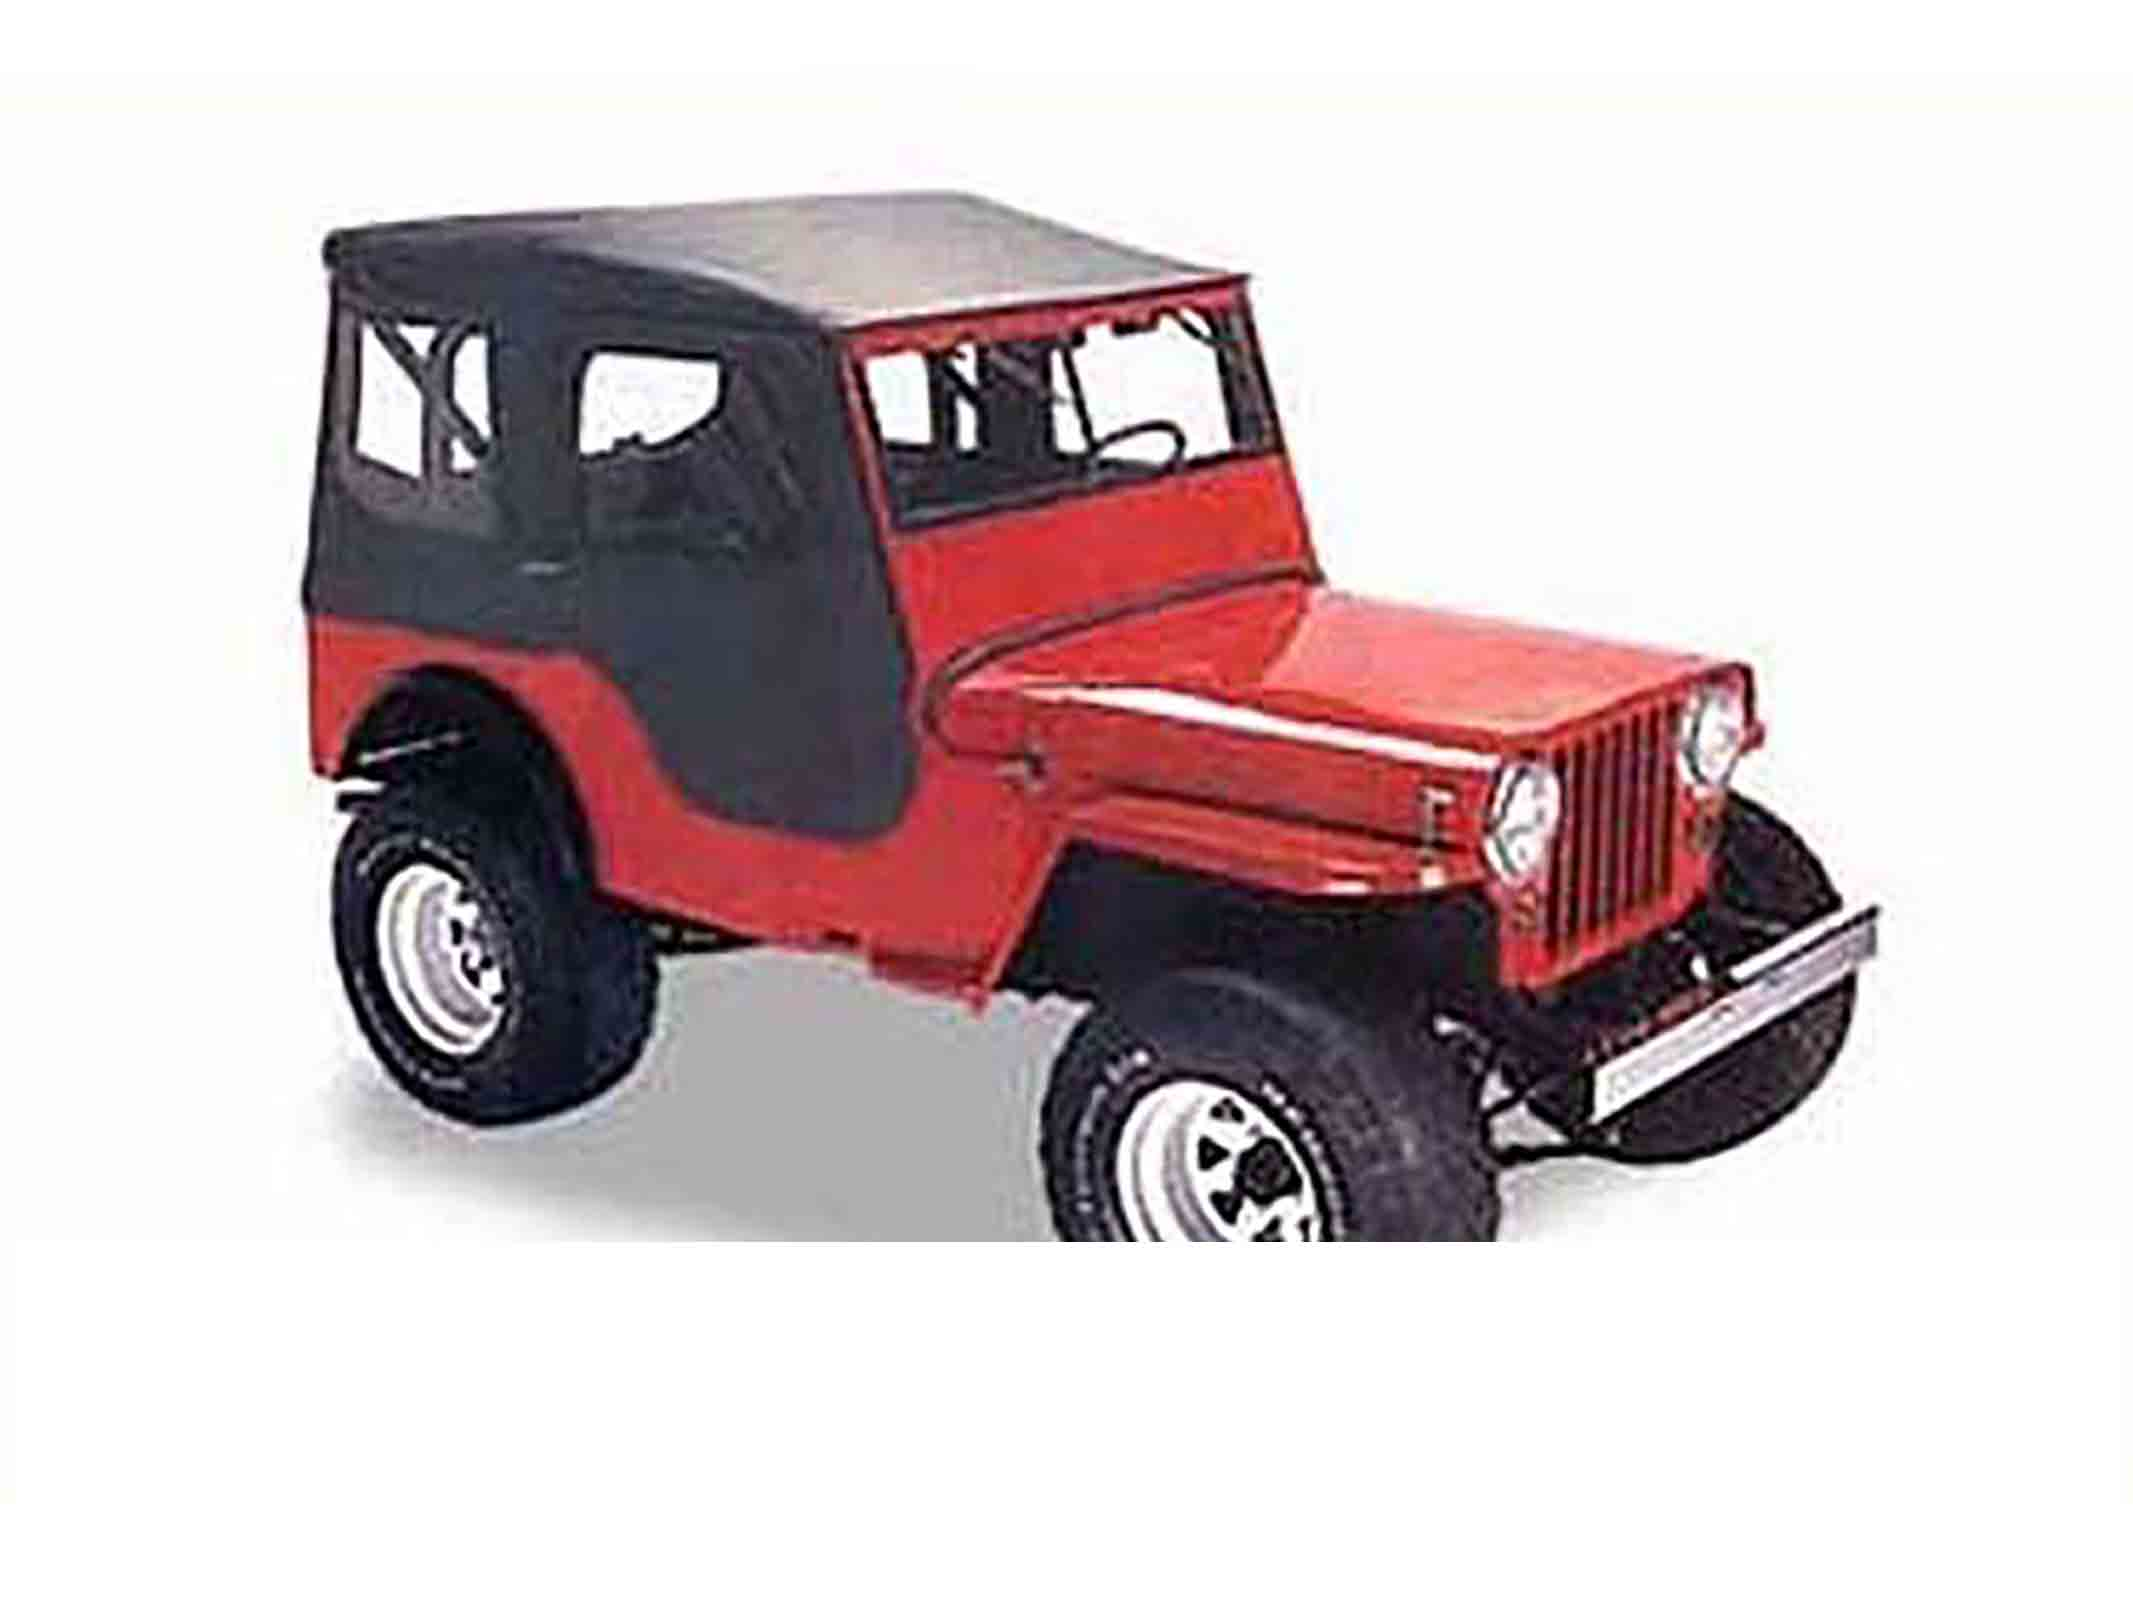 Tigertop softtop soft top capottina jeep cj 48 53 senza centina colori: black crush ricambi jeep